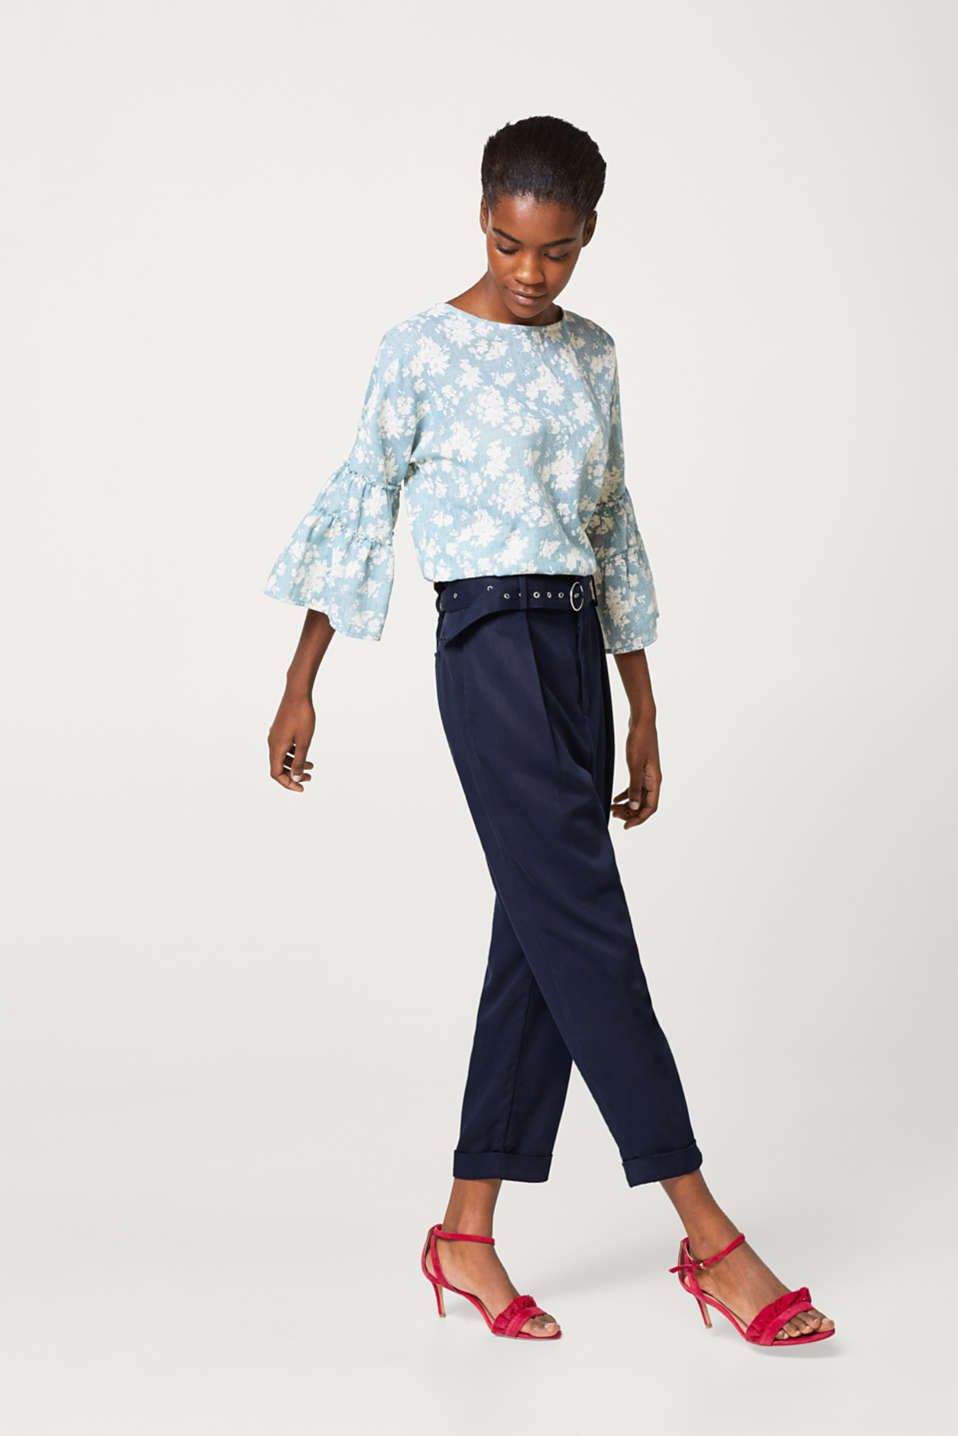 Light and airy textured blouse with a floral print